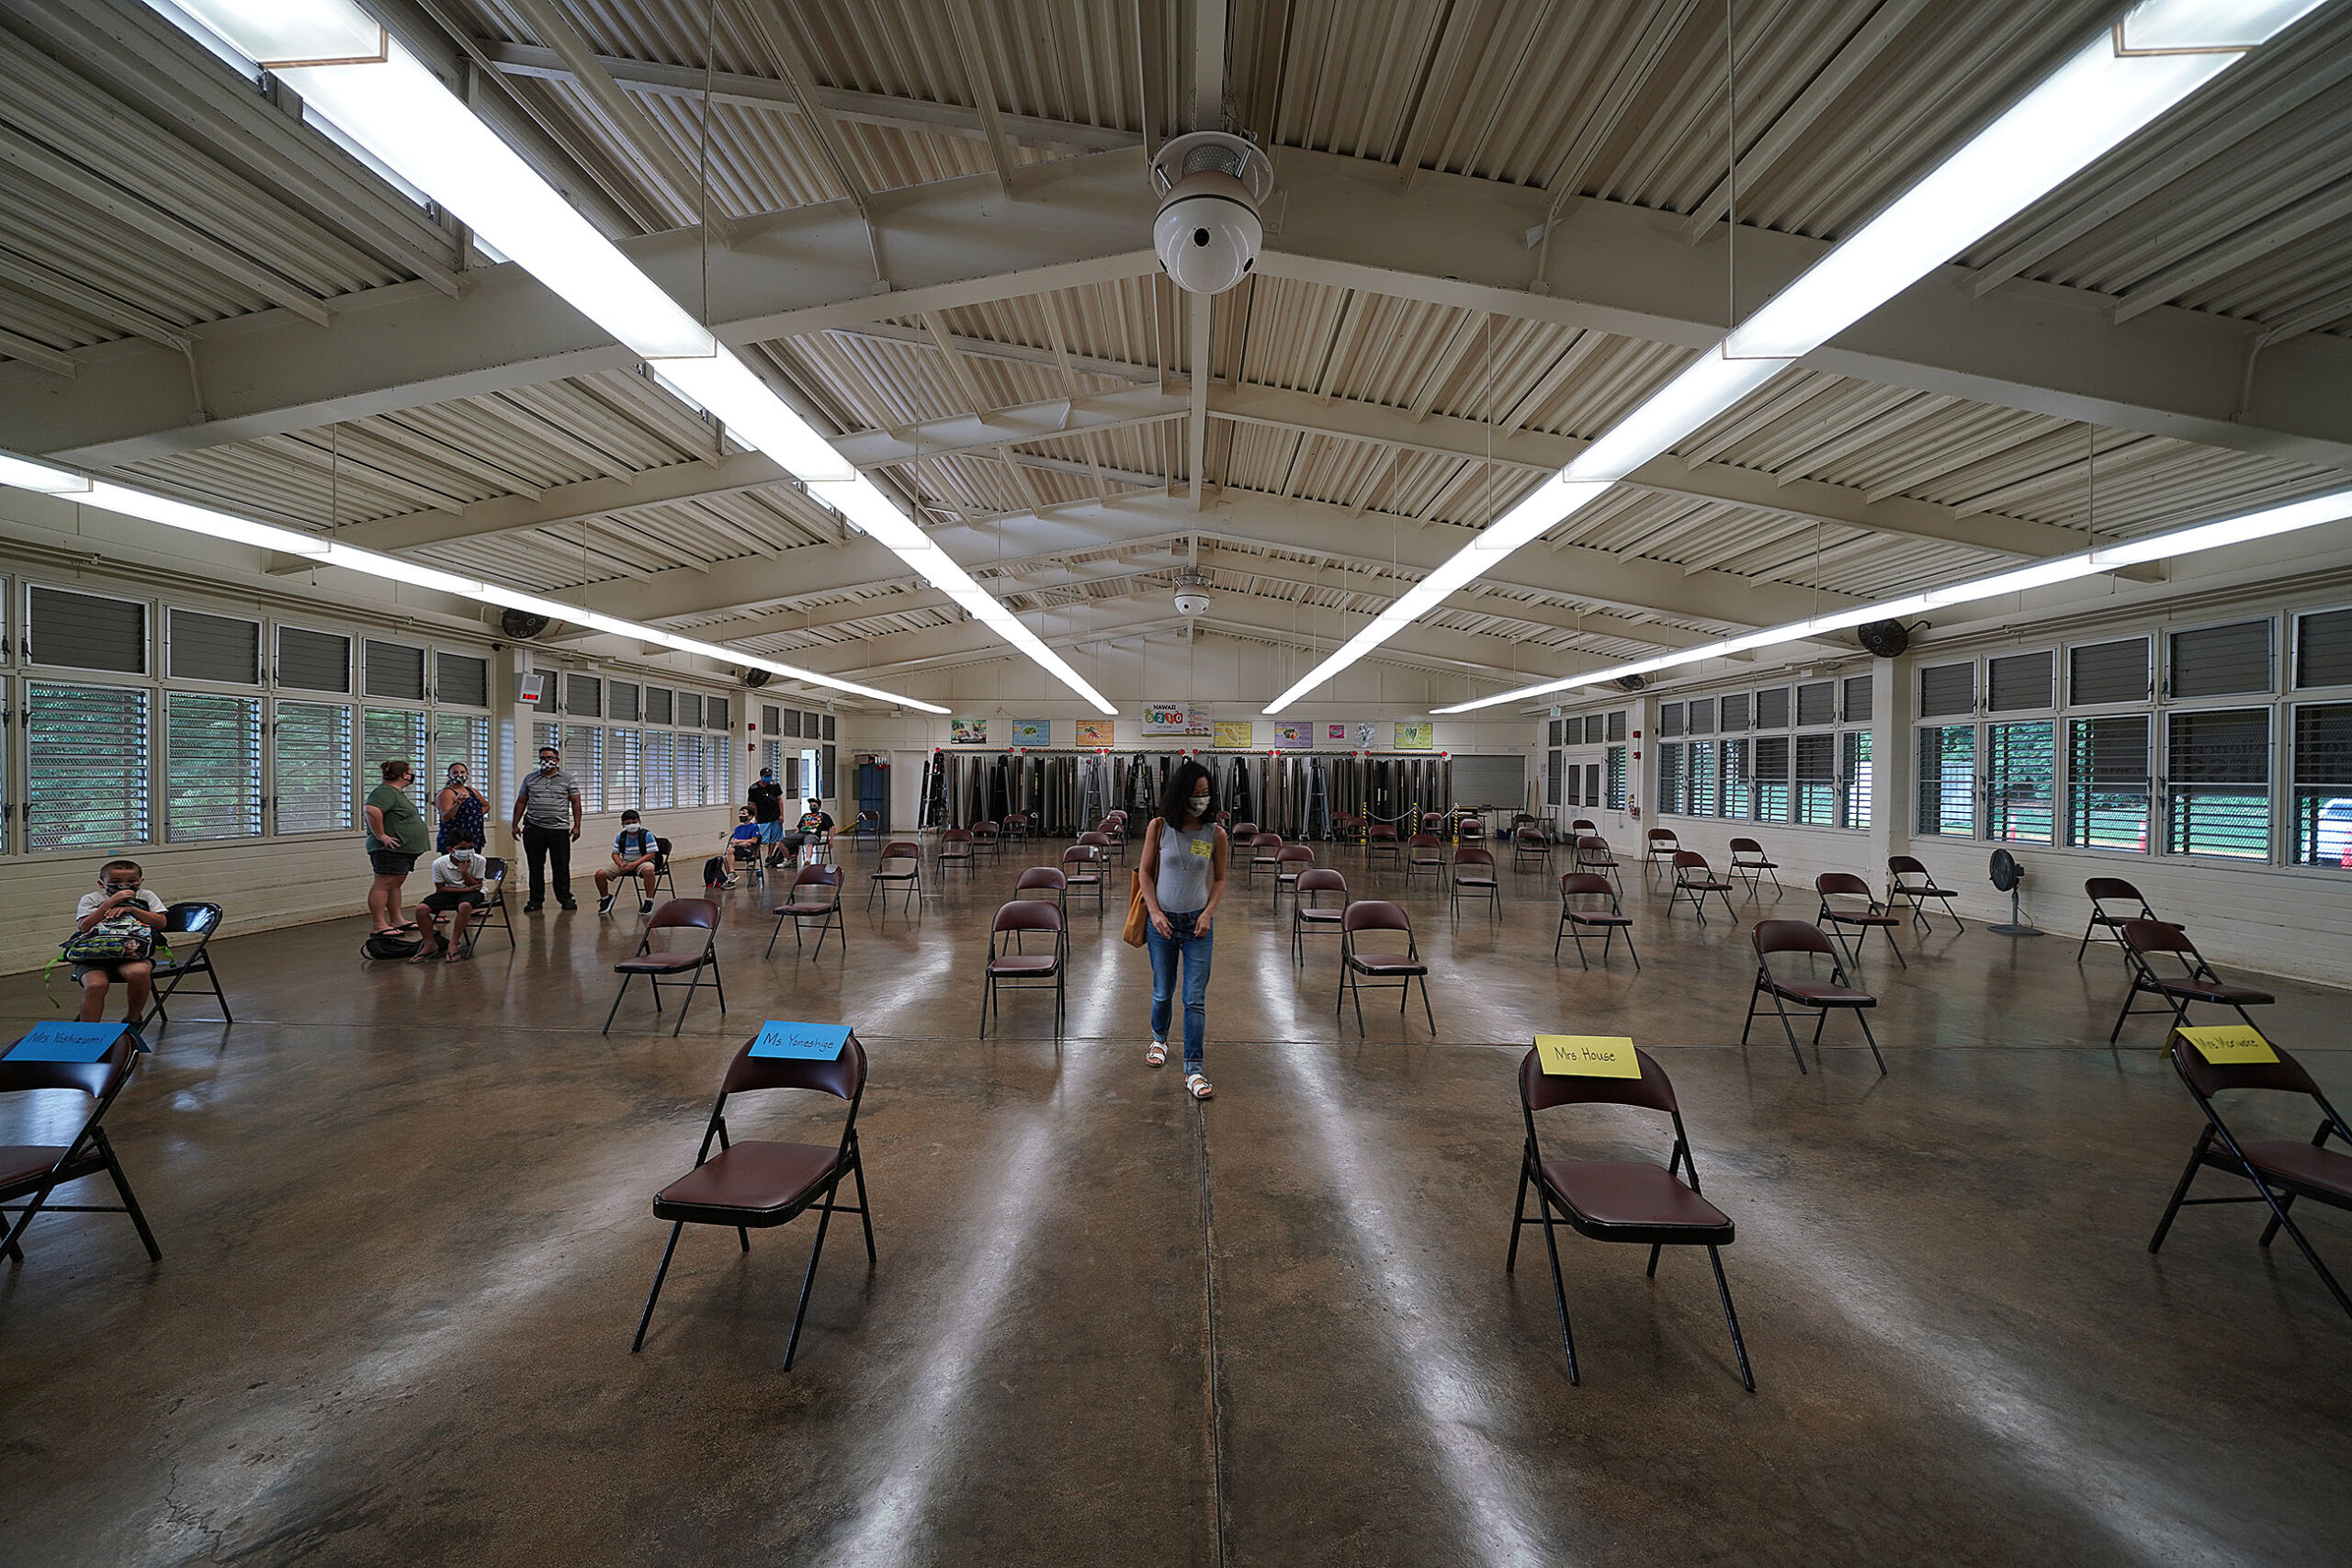 <p>Kaneohe Elementary and other schools around Hawaii endeavored to keep students socially distanced when they returned to school. But for much of the year, classes were held online.</p>